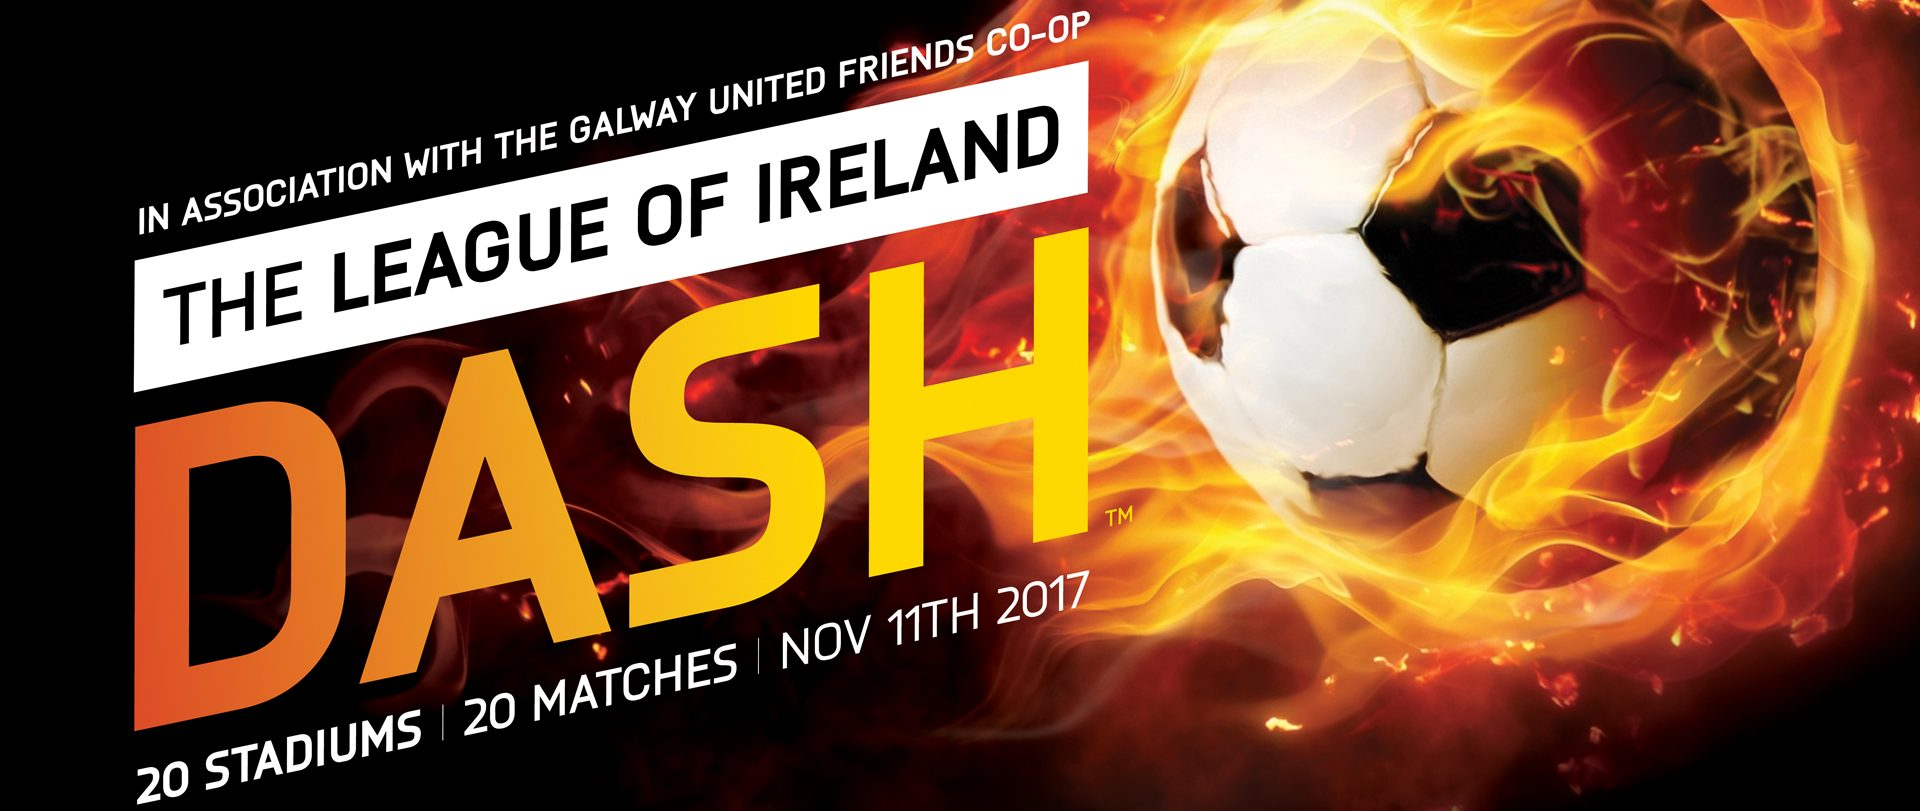 The League of Ireland Dash